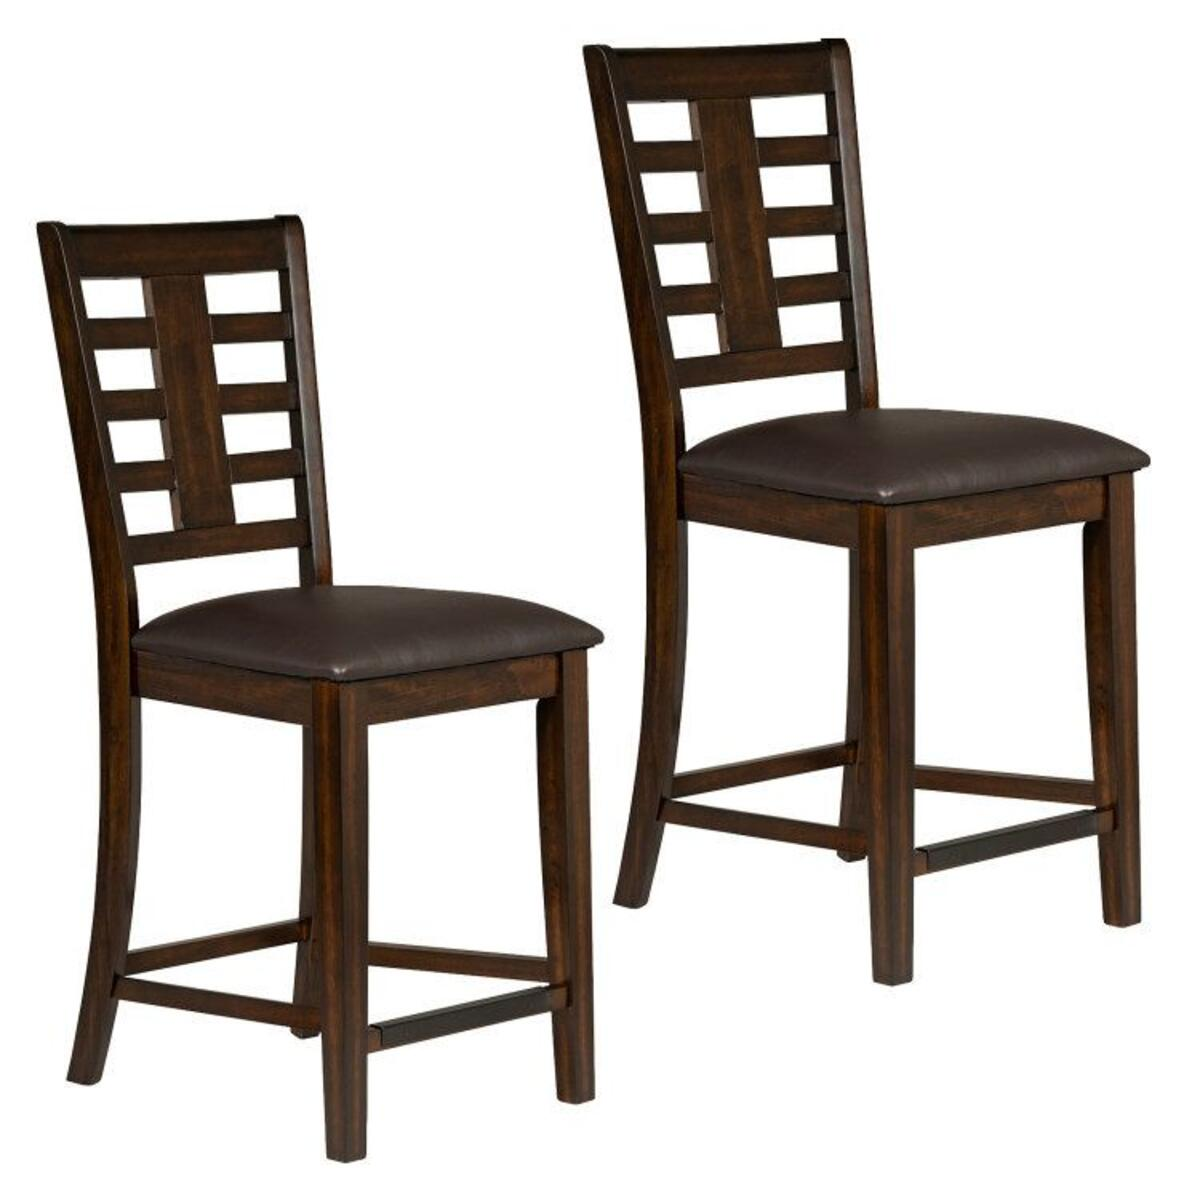 Bella 2-Pack Barstools with Leatherette Seat, Cherry Brown